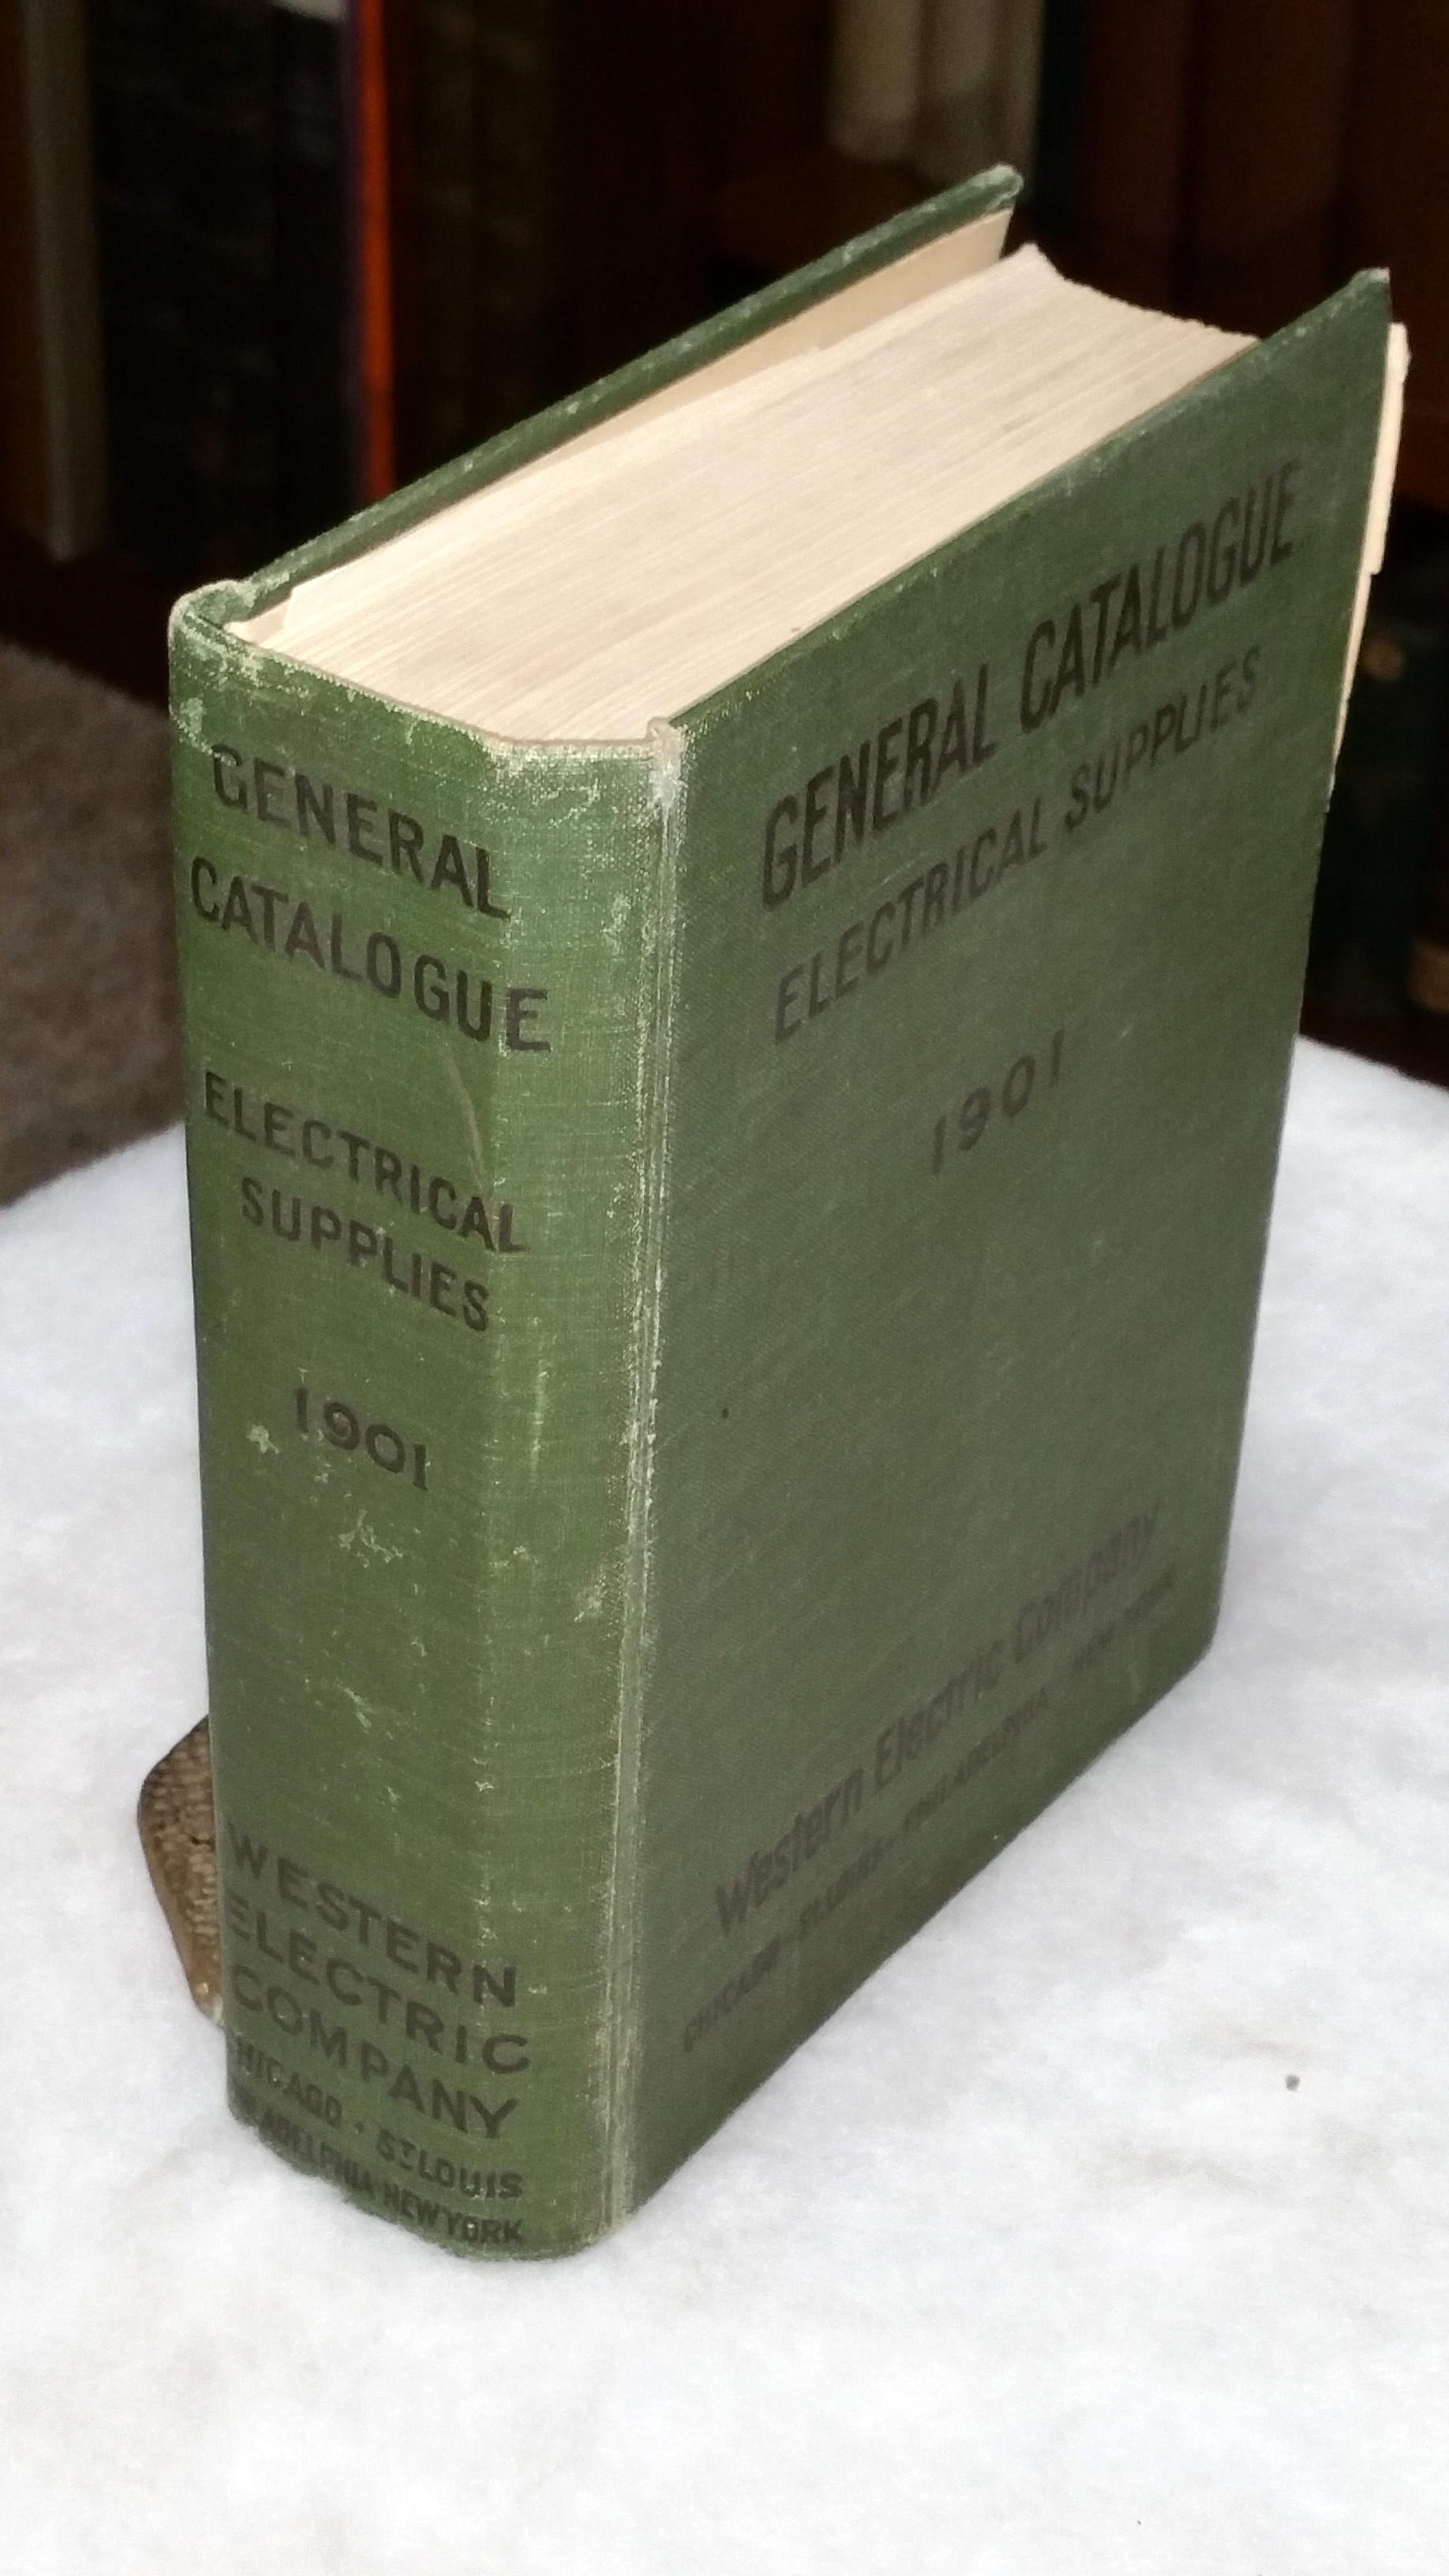 Image for General Catalogue of Electrical Supplies, Western Electric Company